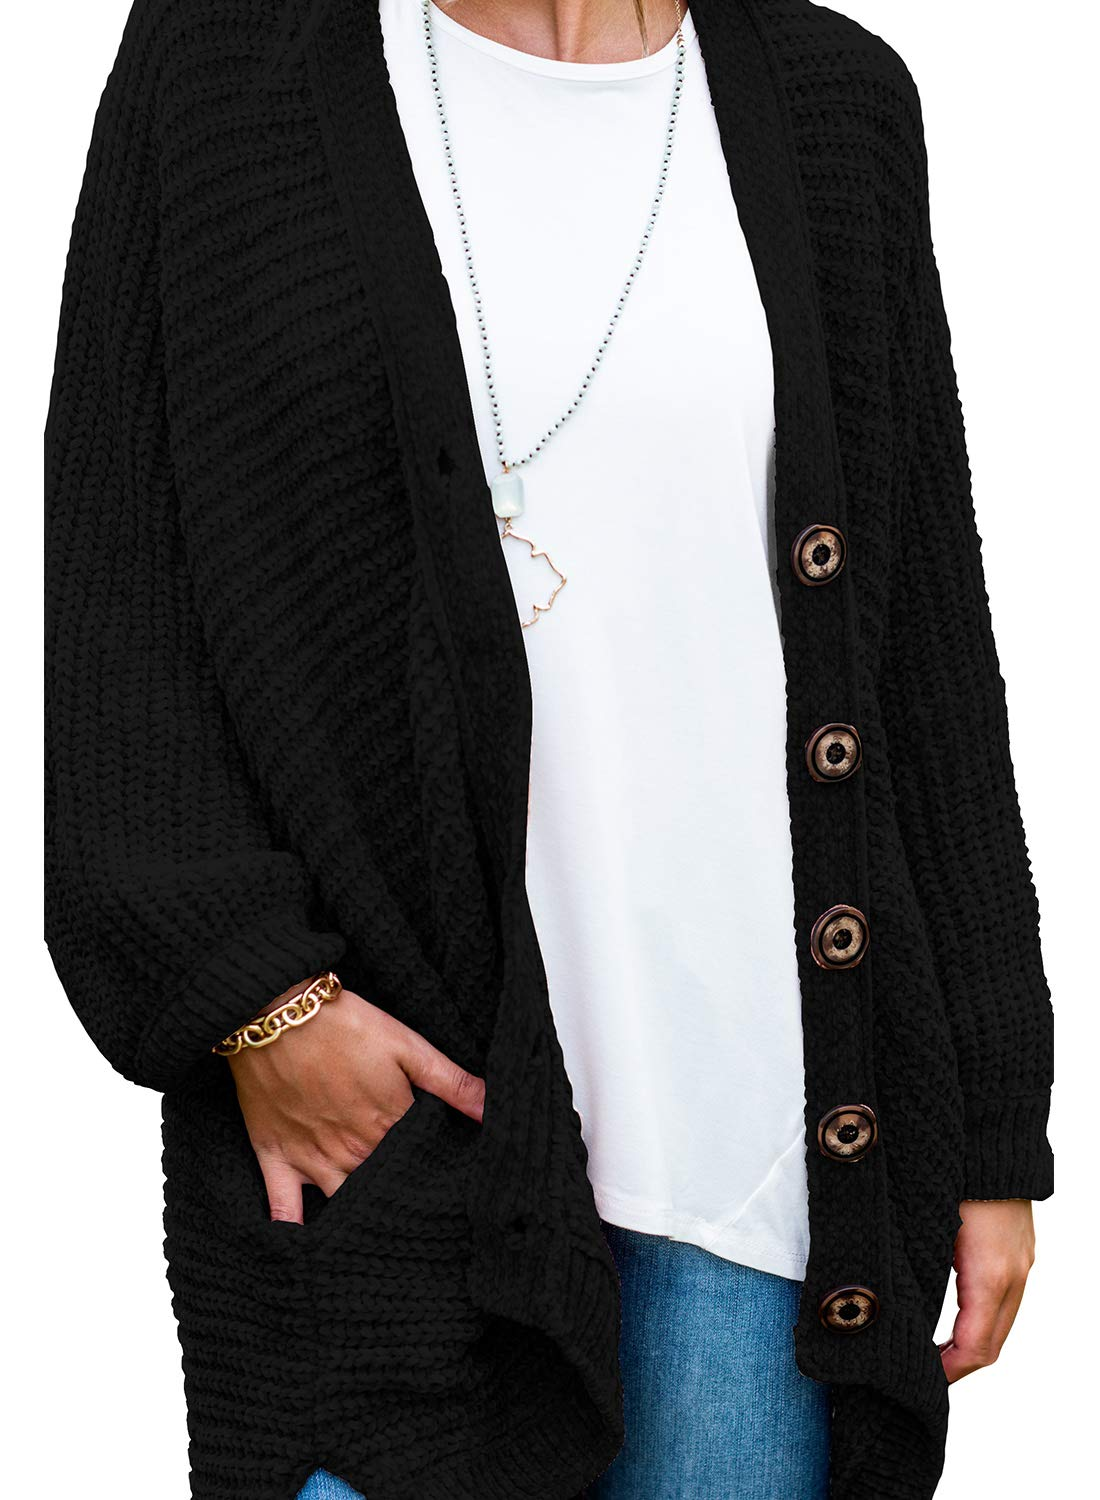 Women's Long Sleeve Button Down Oversized Open Front Cardigans Loose Chenille Knit Sweater Coat Casual Outwear Pocket Black XXL 20 22